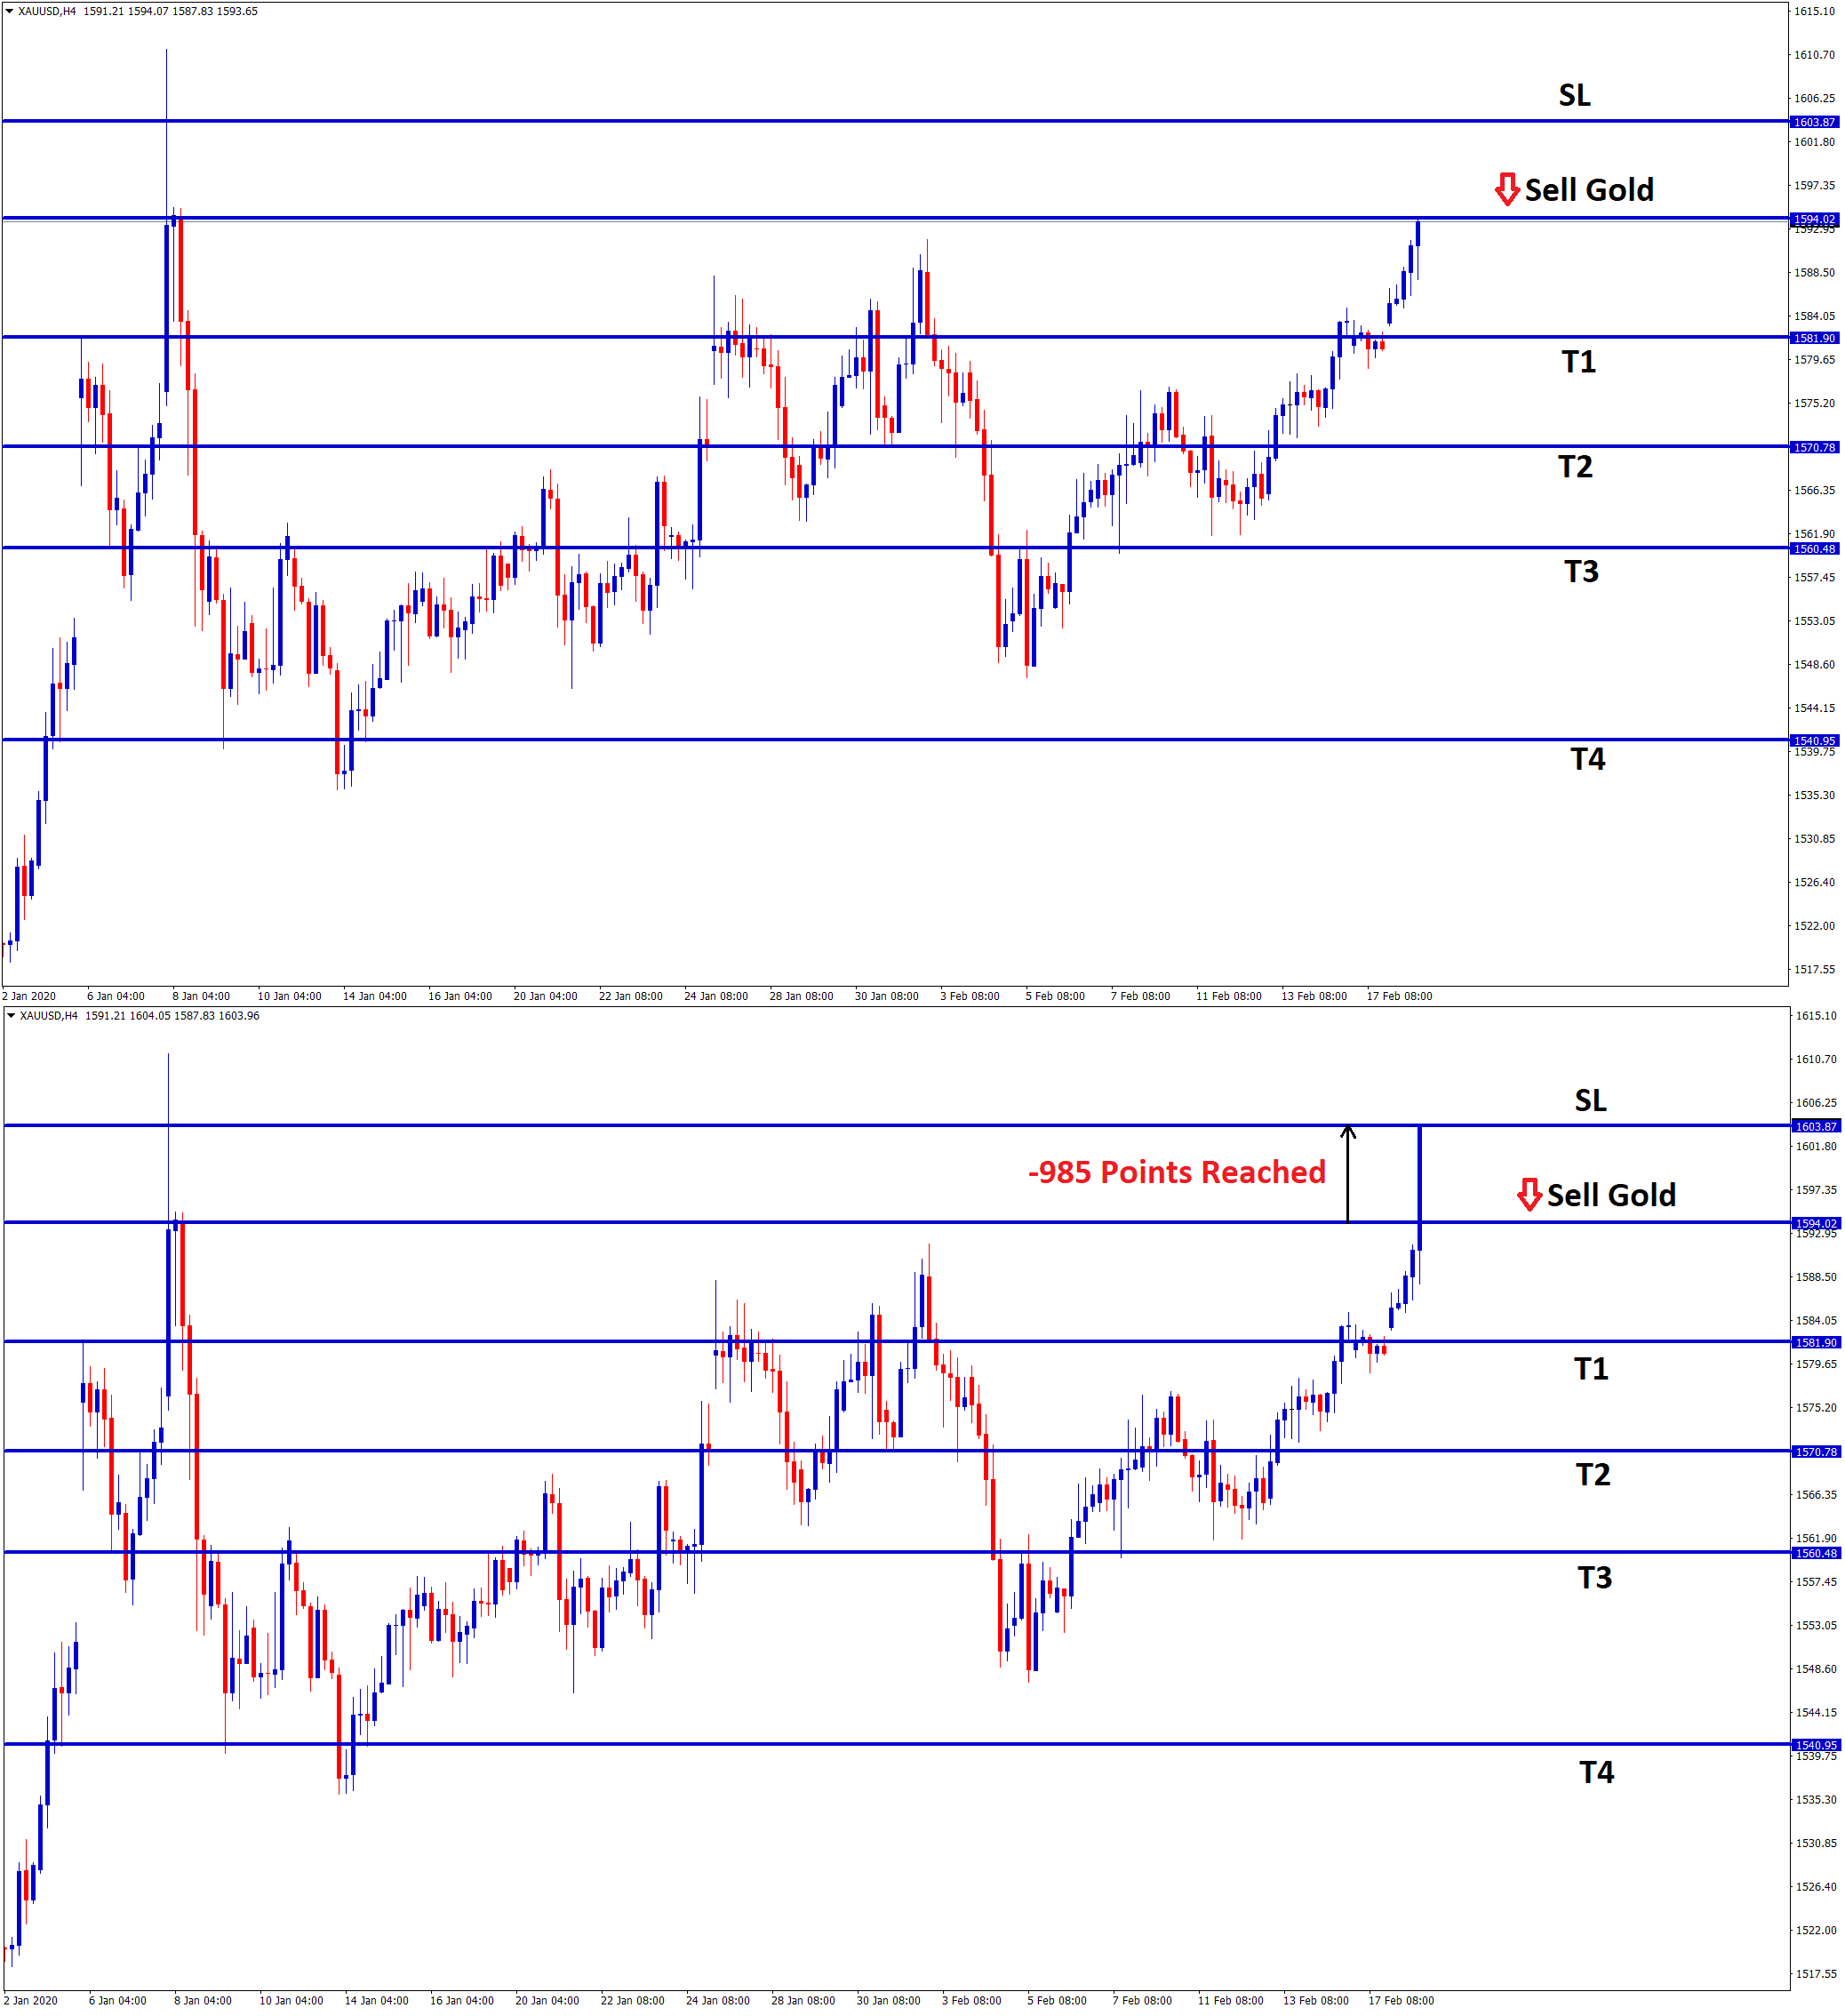 gold touched the stop loss